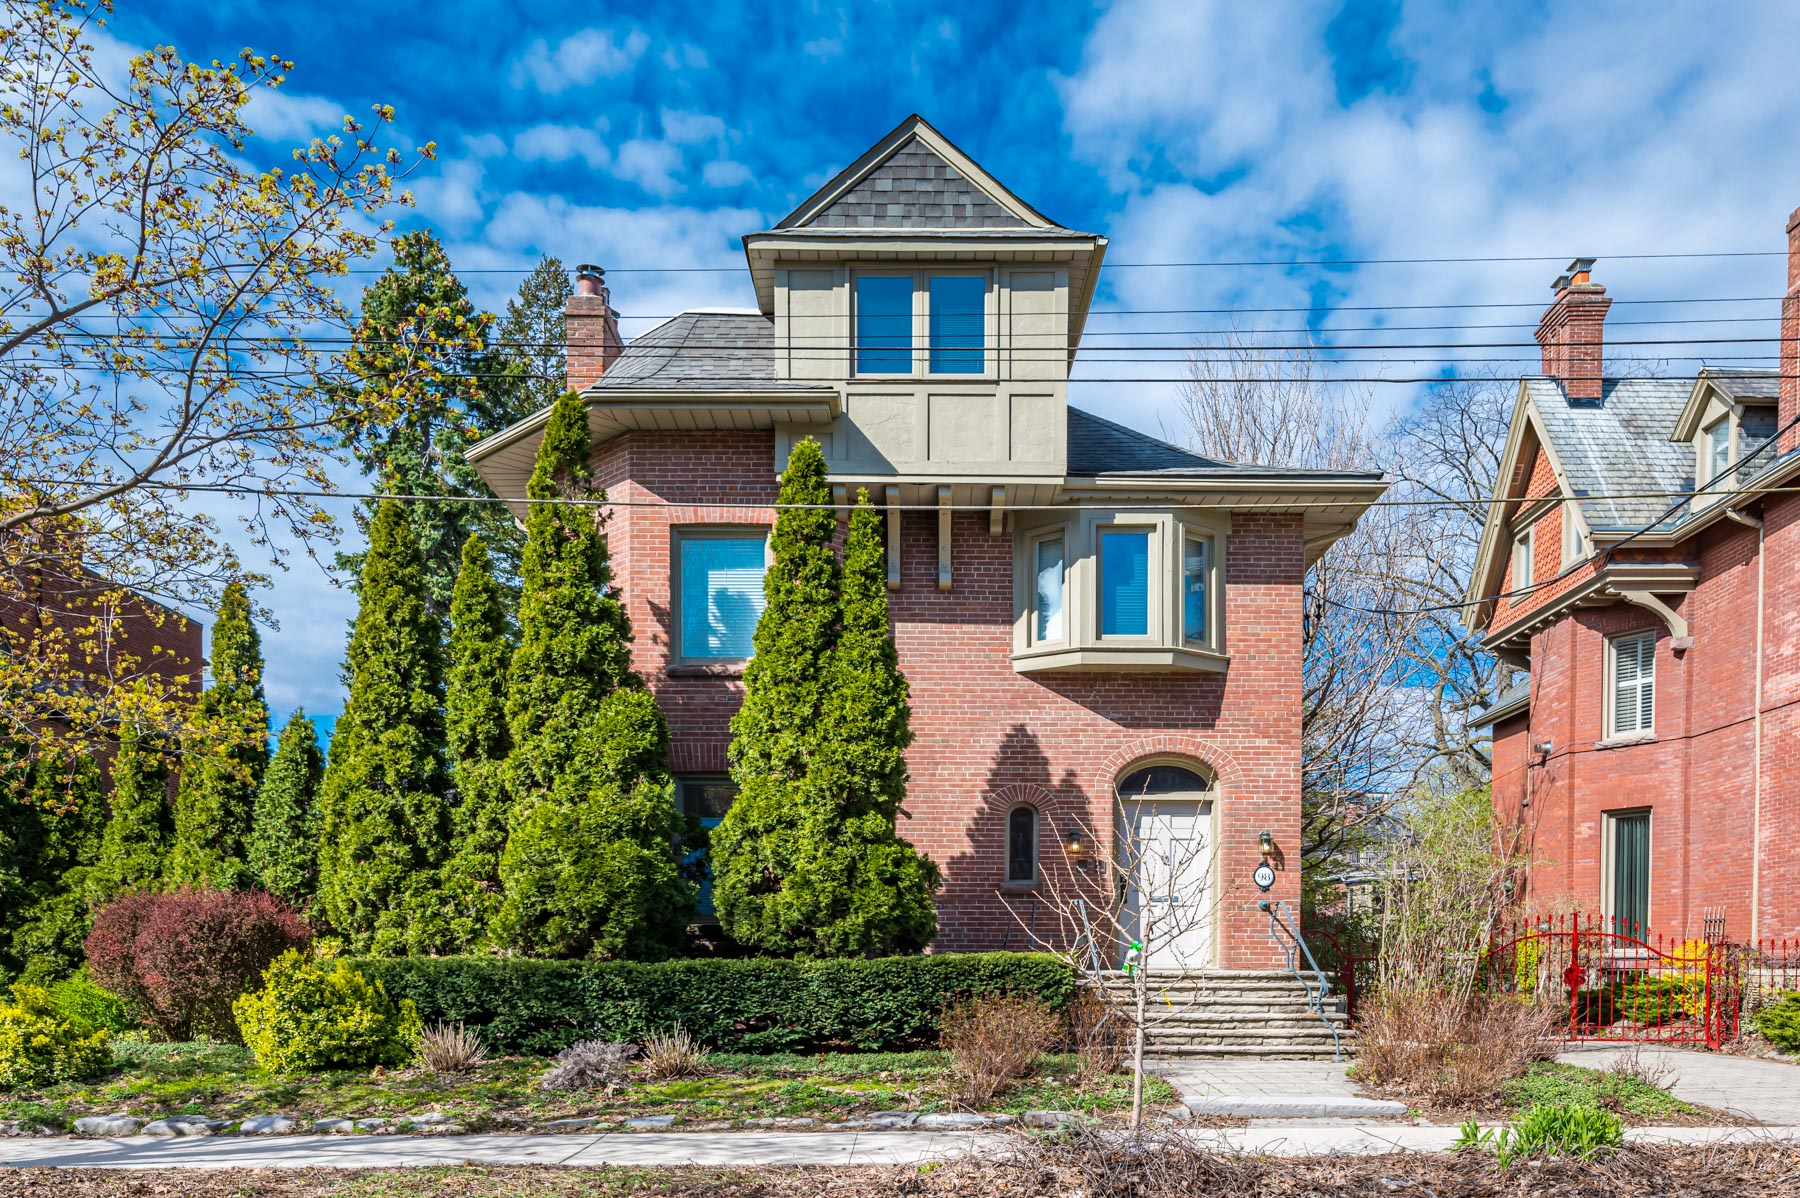 Front of 98 Bedford Rd, a 2-storey redbrick Victorian house.